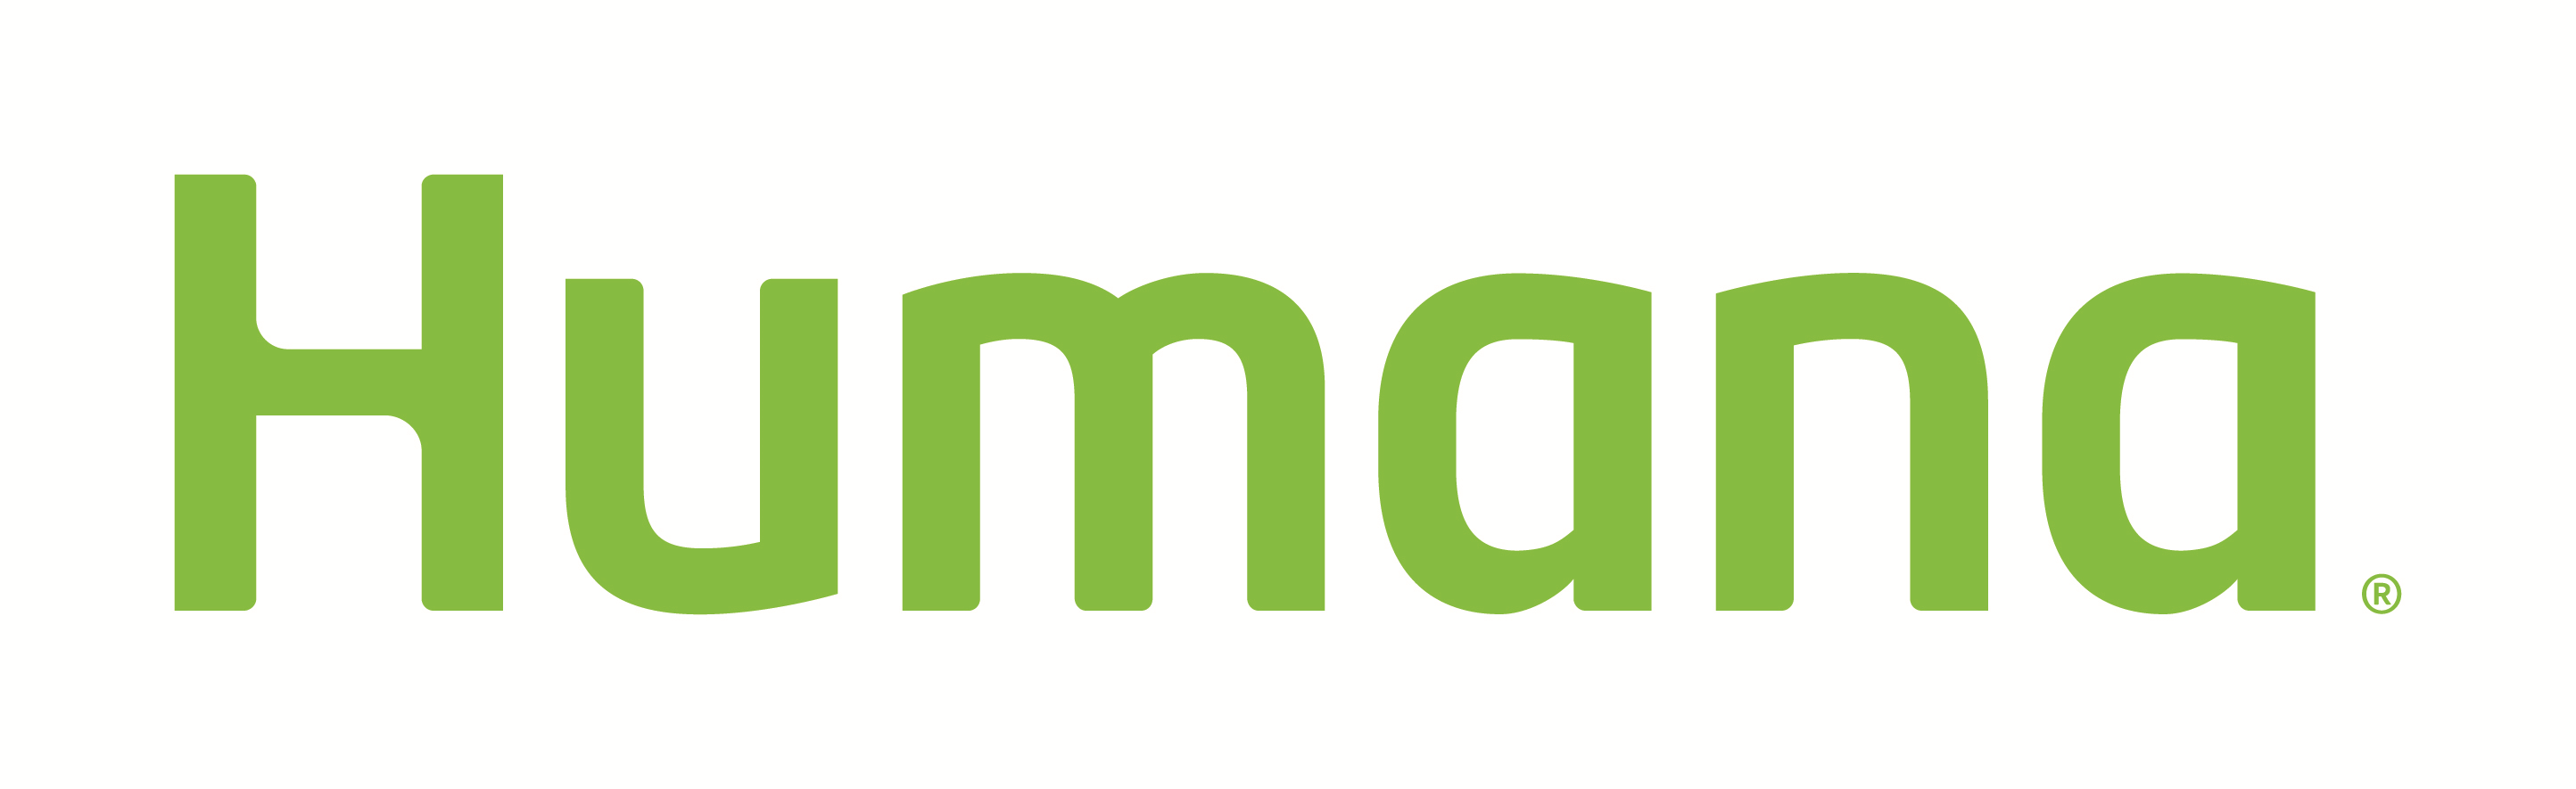 Humana Logo Png - Texas Association of Regional Councils